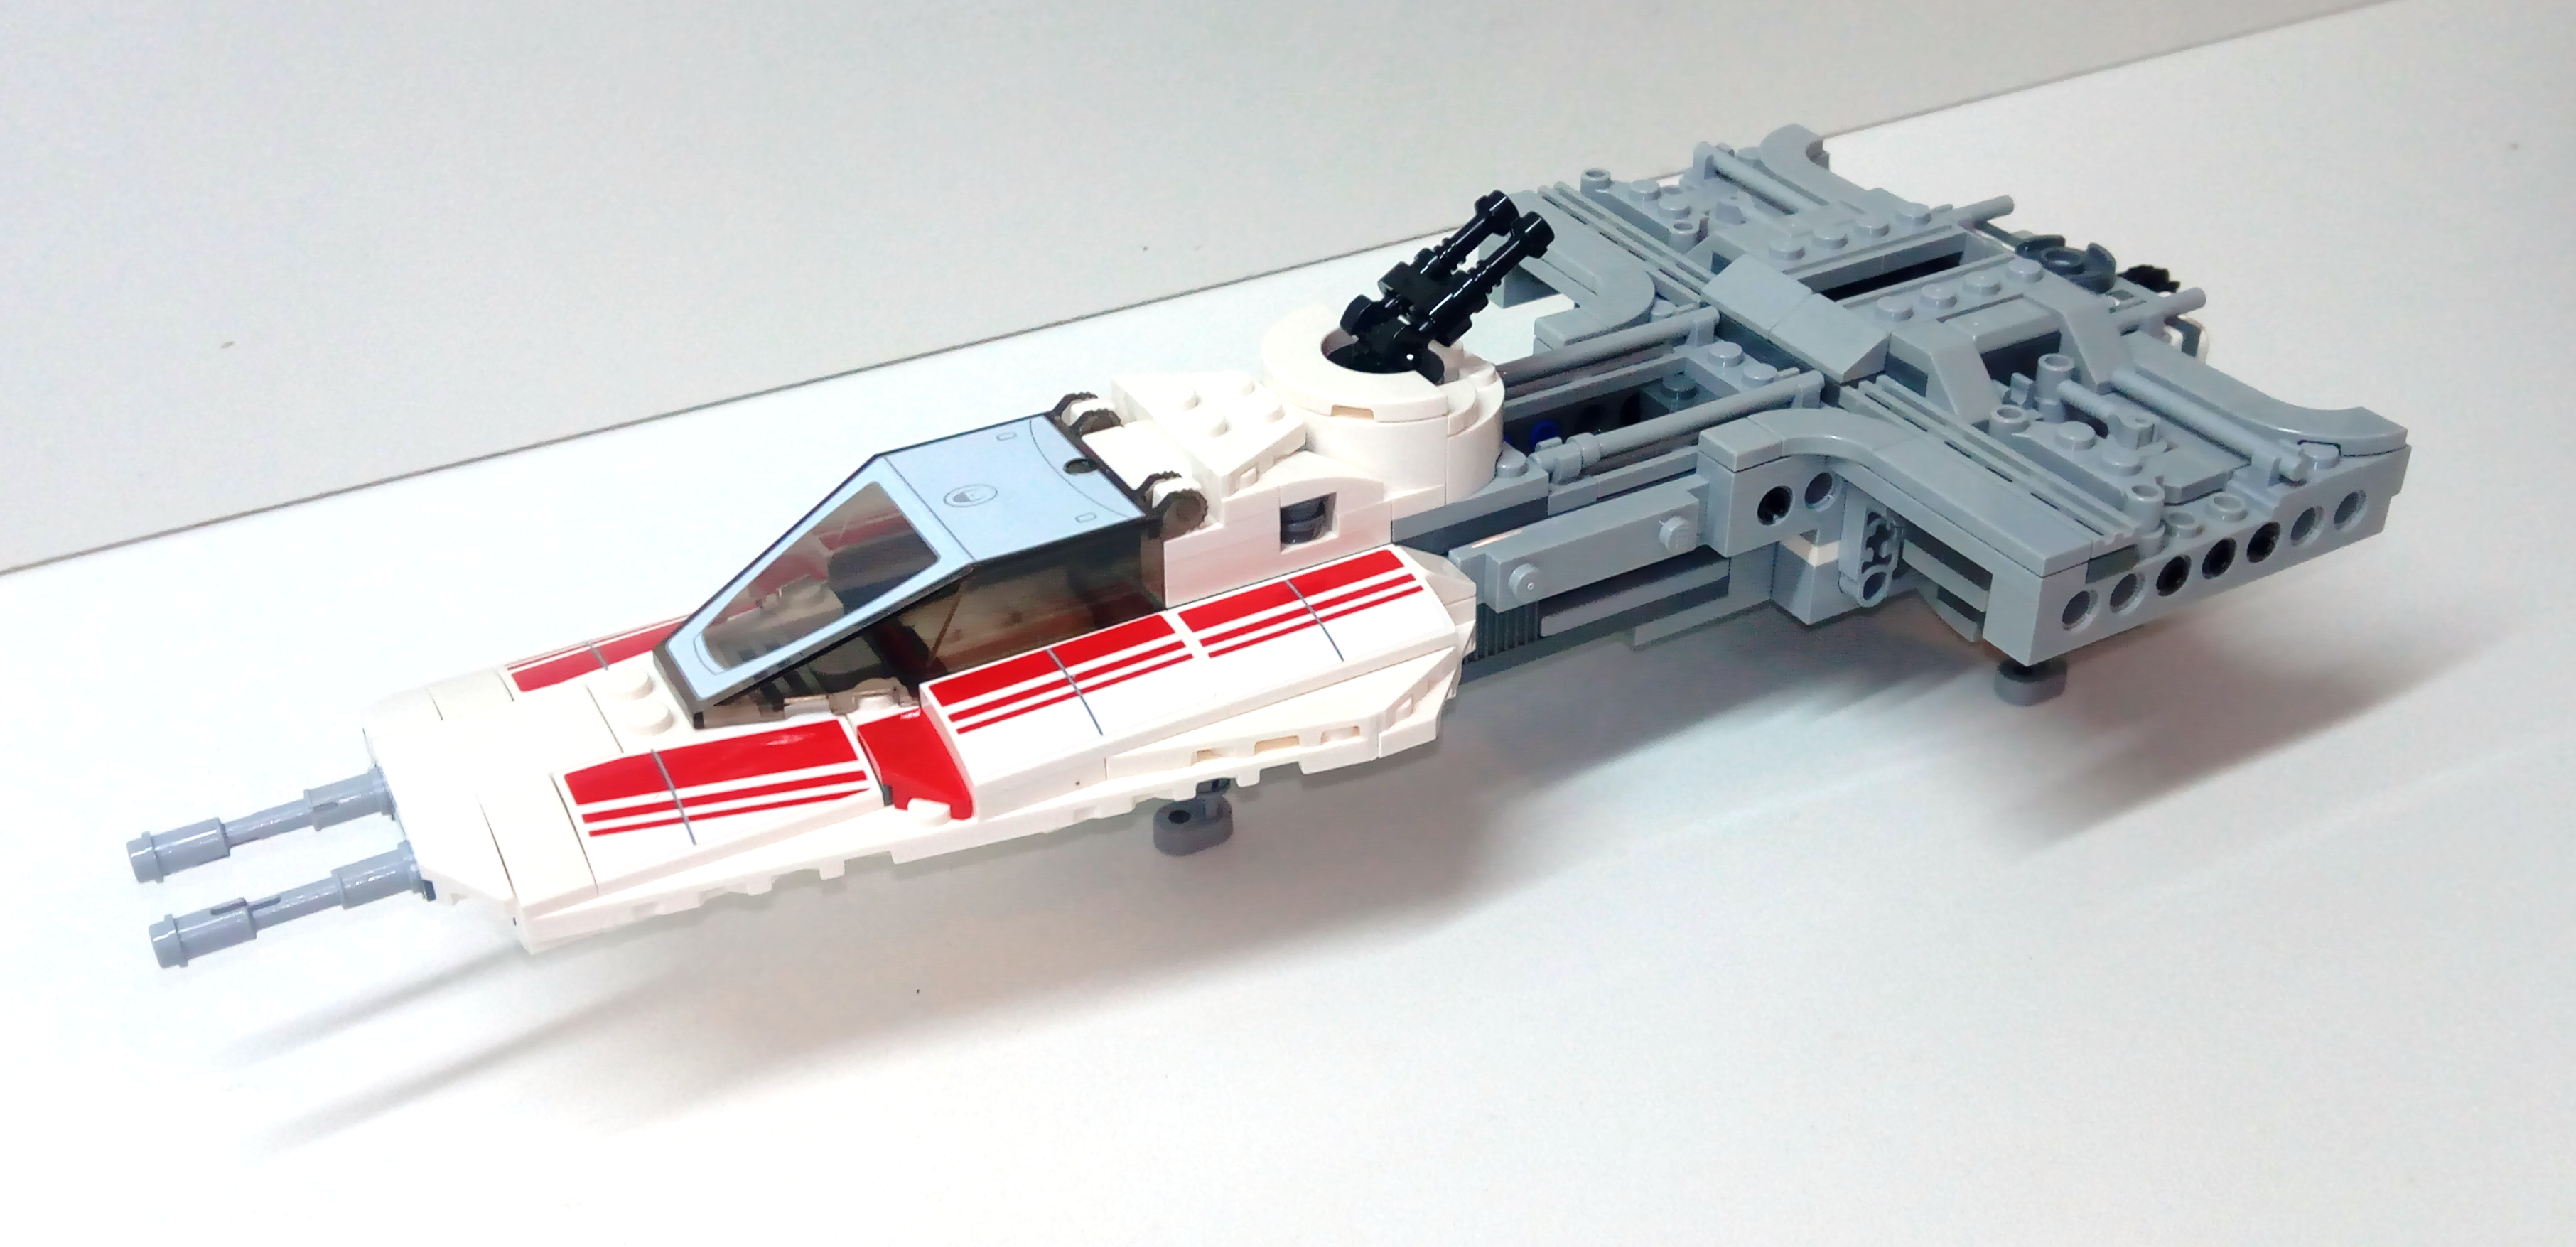 Review 75249 1 Resistance Y Wing Starfighter Rebrickable Build With Lego